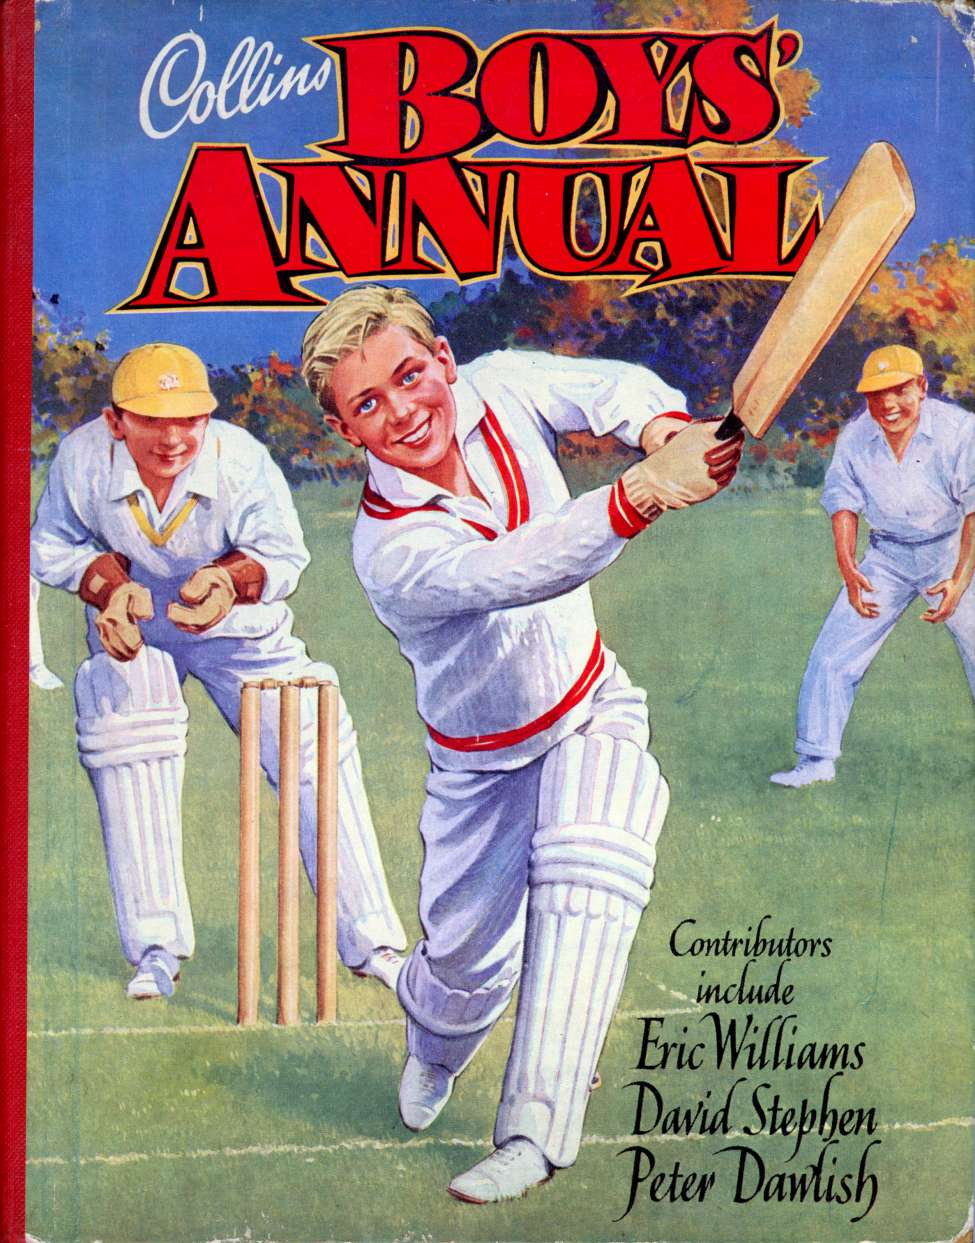 Comic Book Cover For Collins Boys Annual c1950s